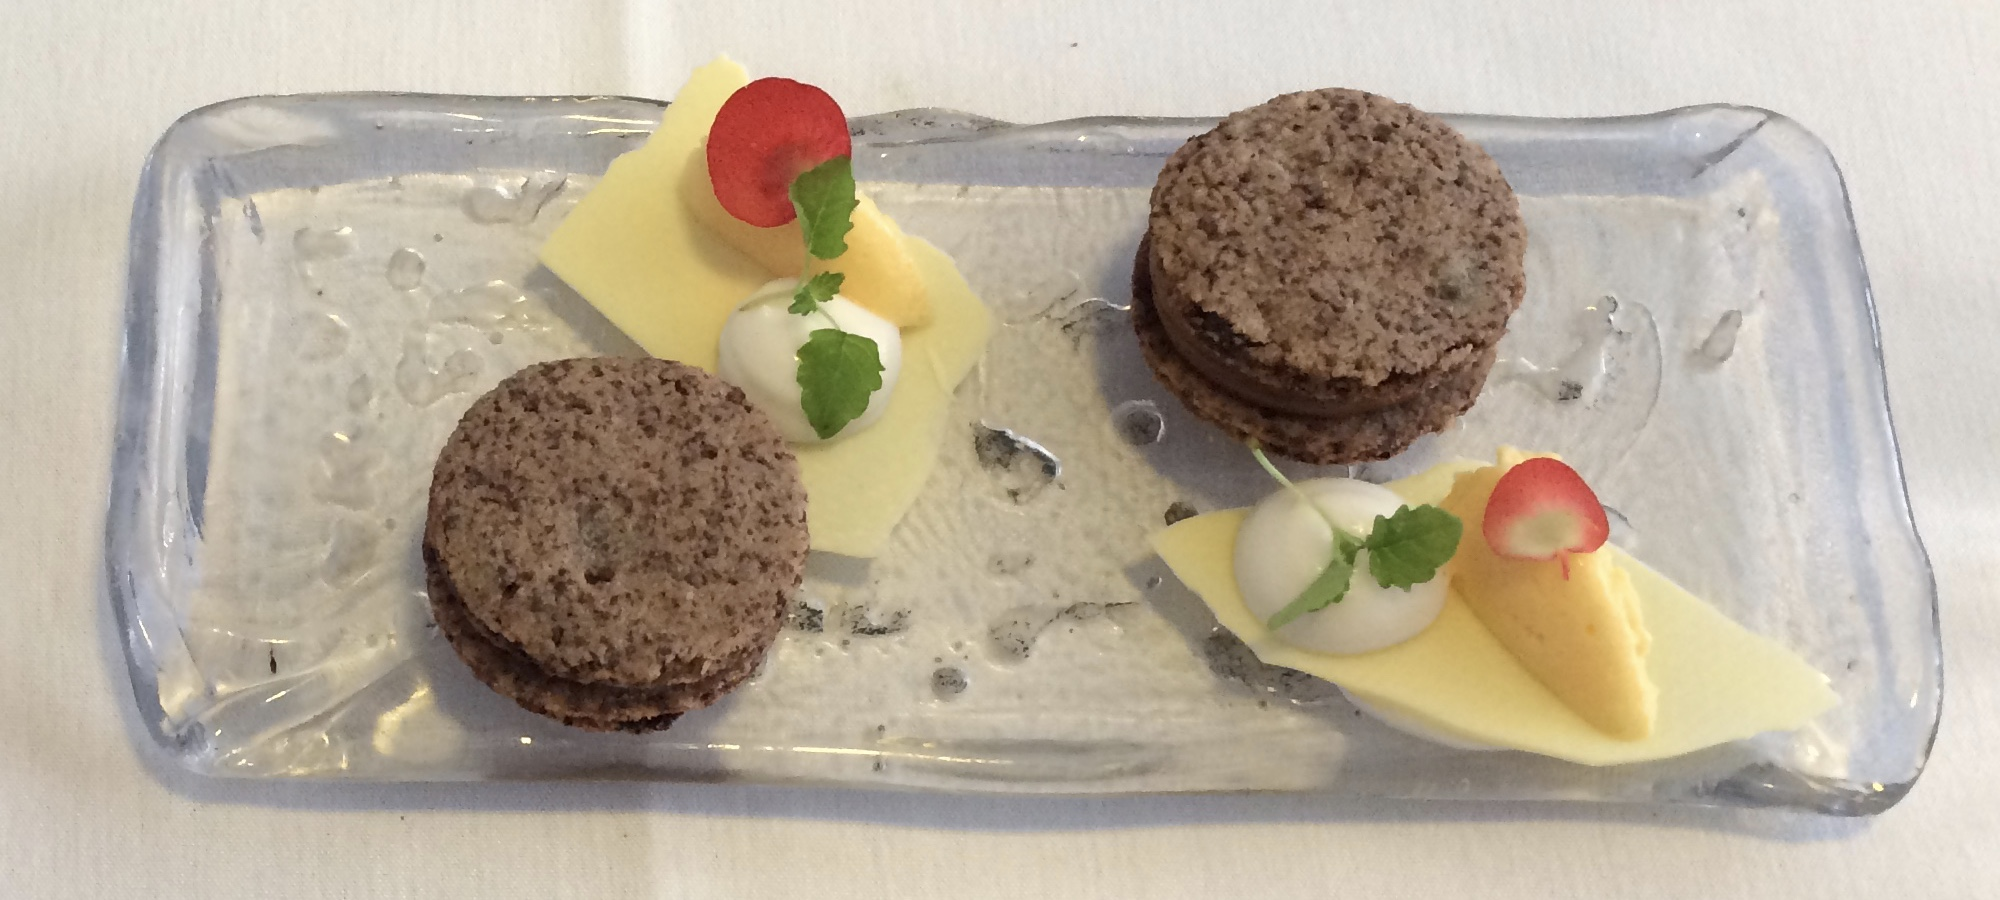 Petit fours at Roger Hickman's fine dining restaurant in Norwich